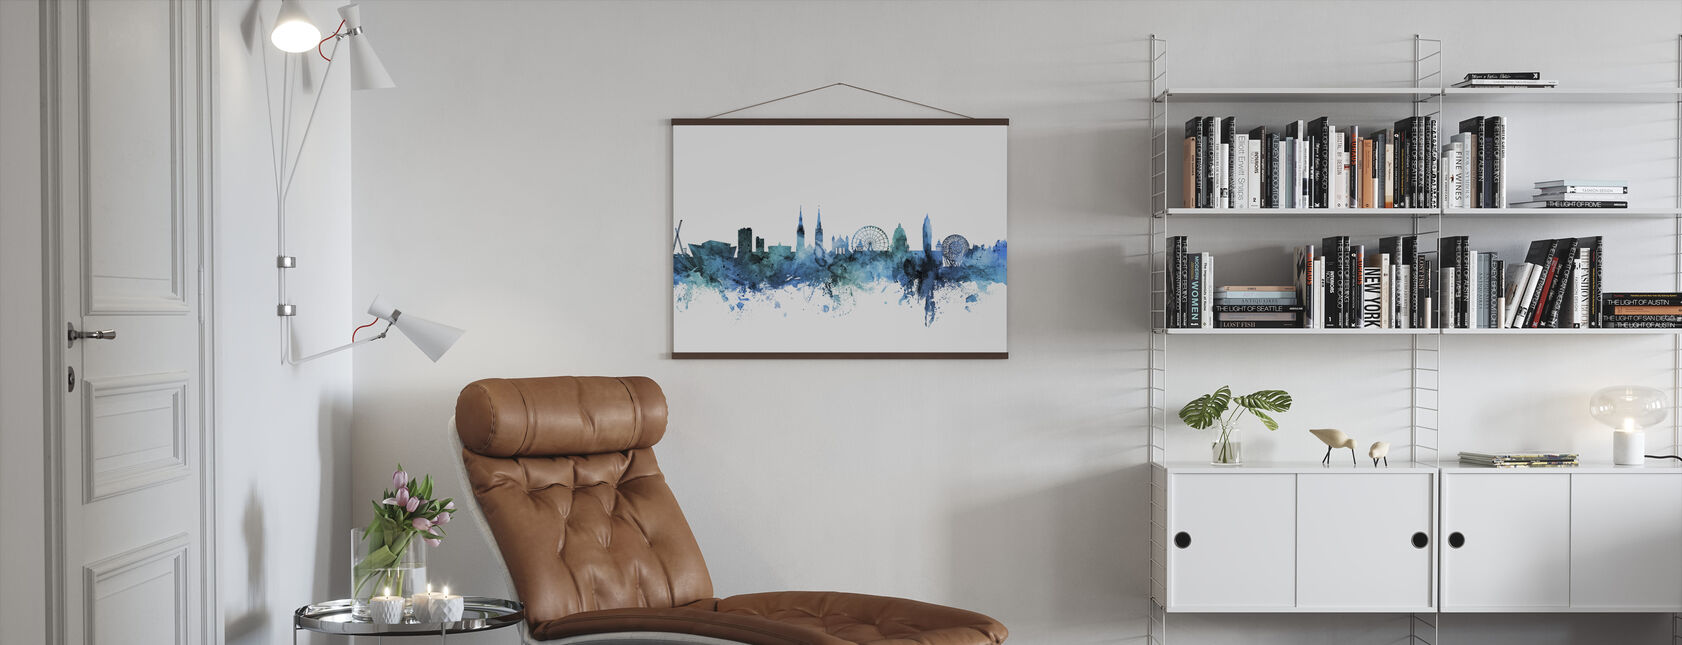 Belfast Northern Ireland Skyline - Poster - Living Room